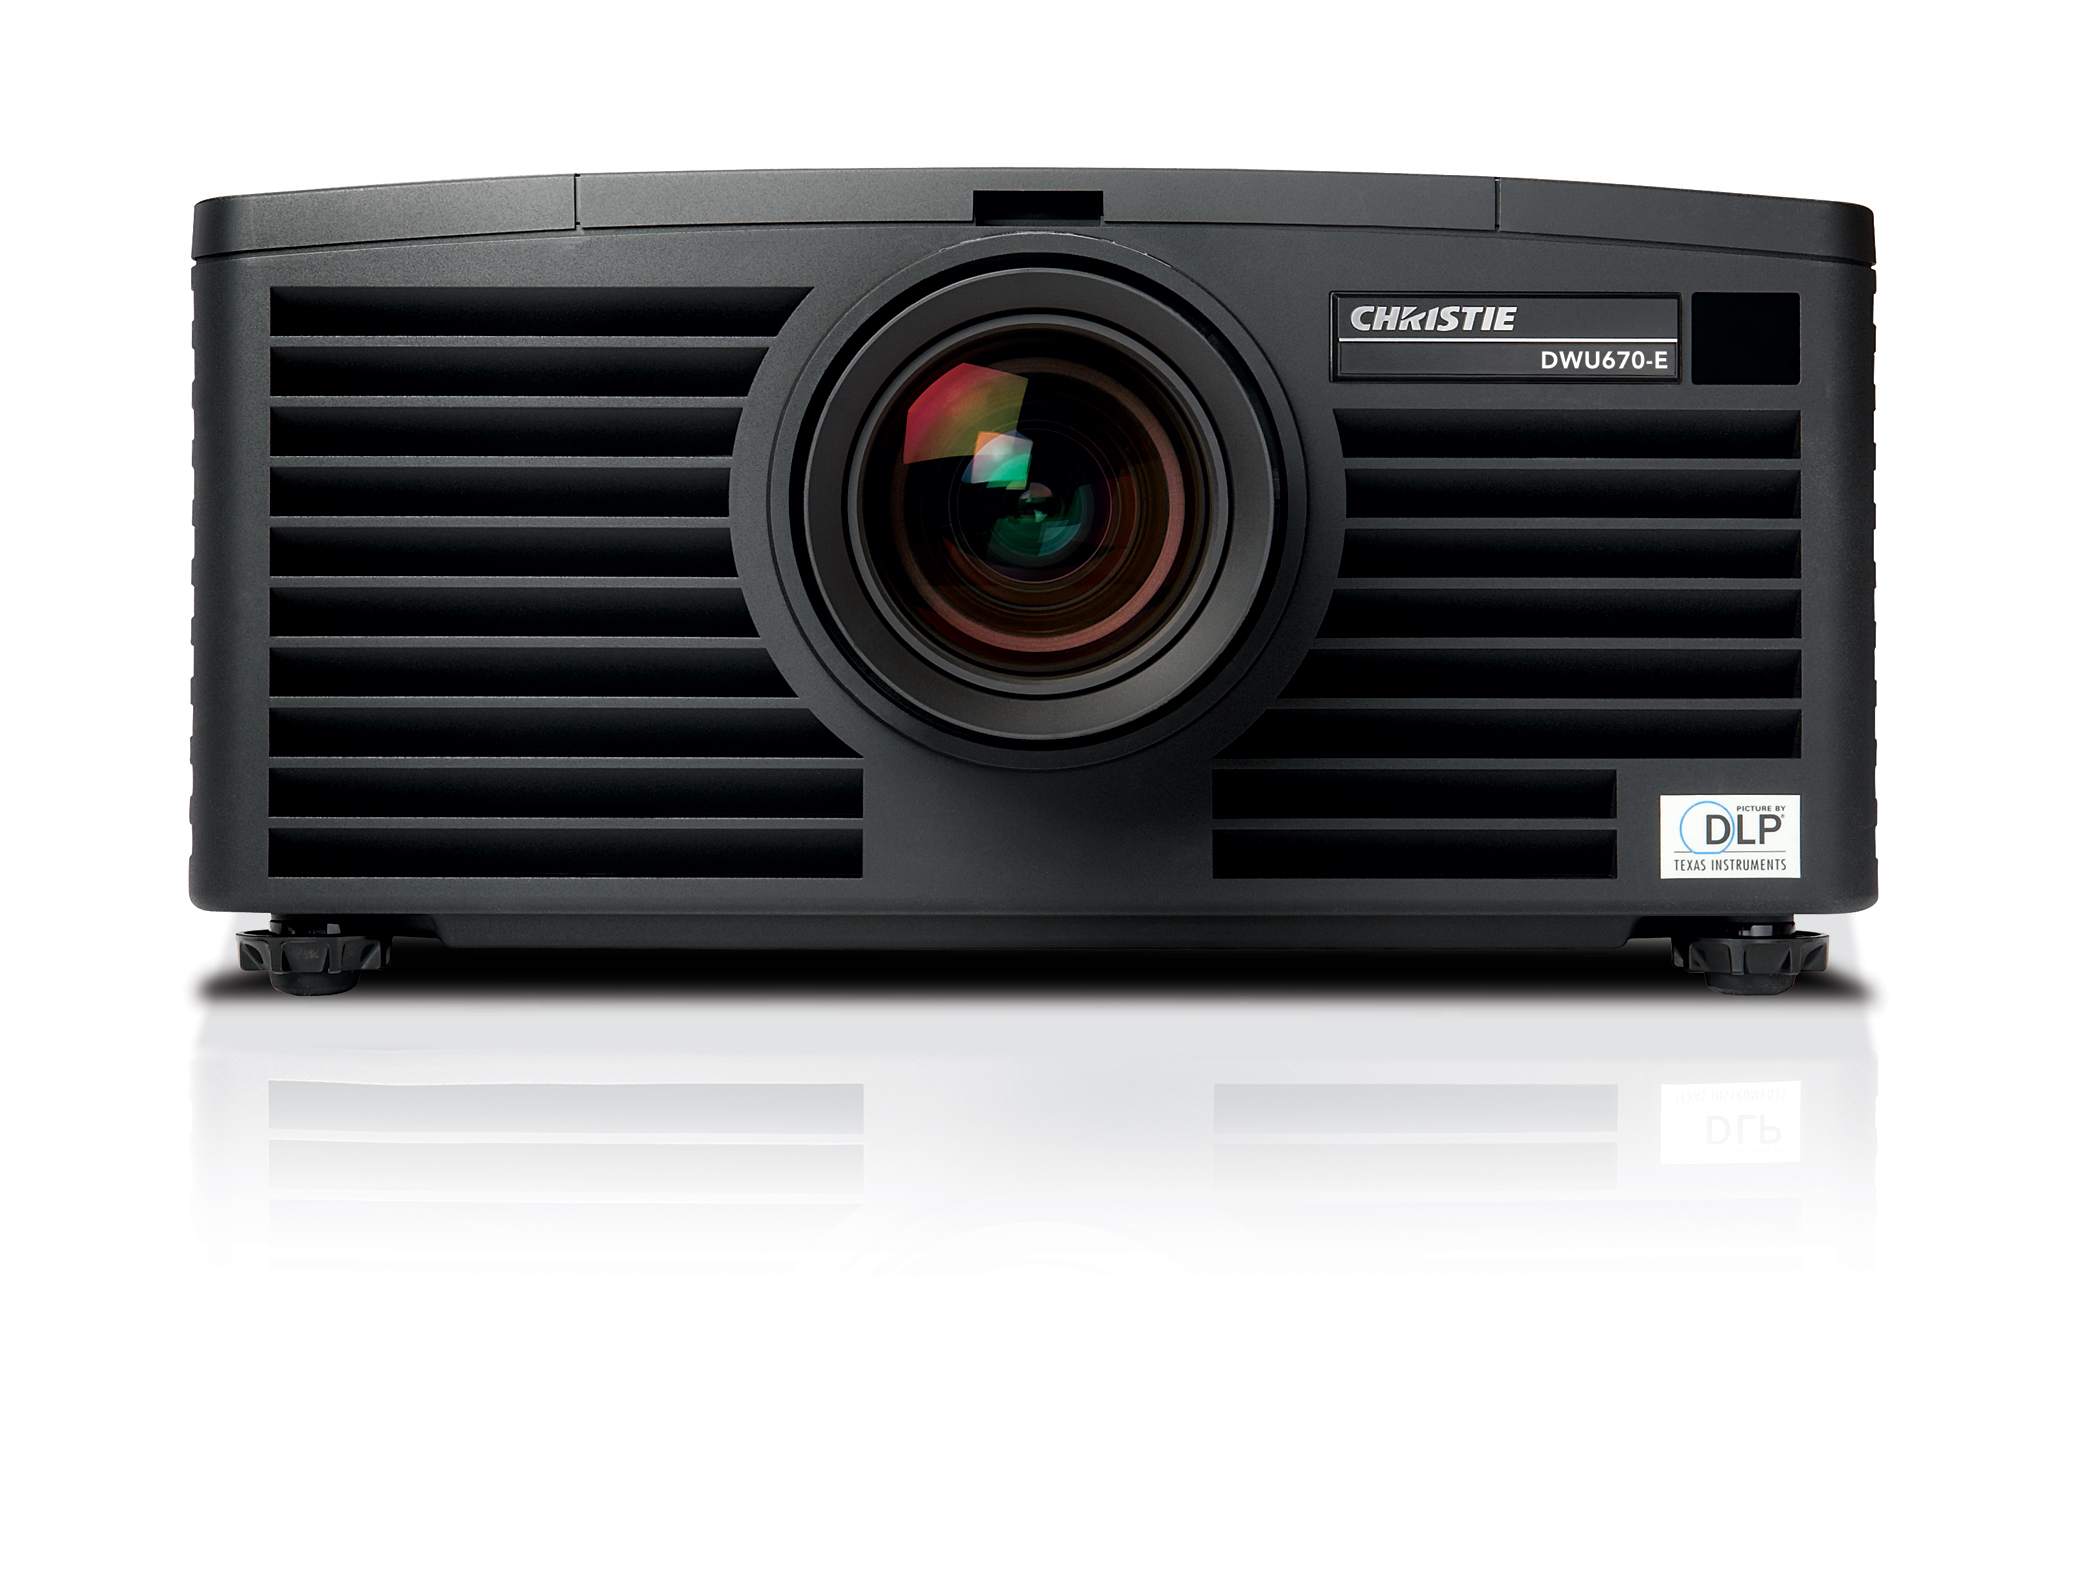 /globalassets/.catalog/products/images/christie-dwu670-e/gallery/christie-dwu670-e-dlp-digital-projector-front.jpg